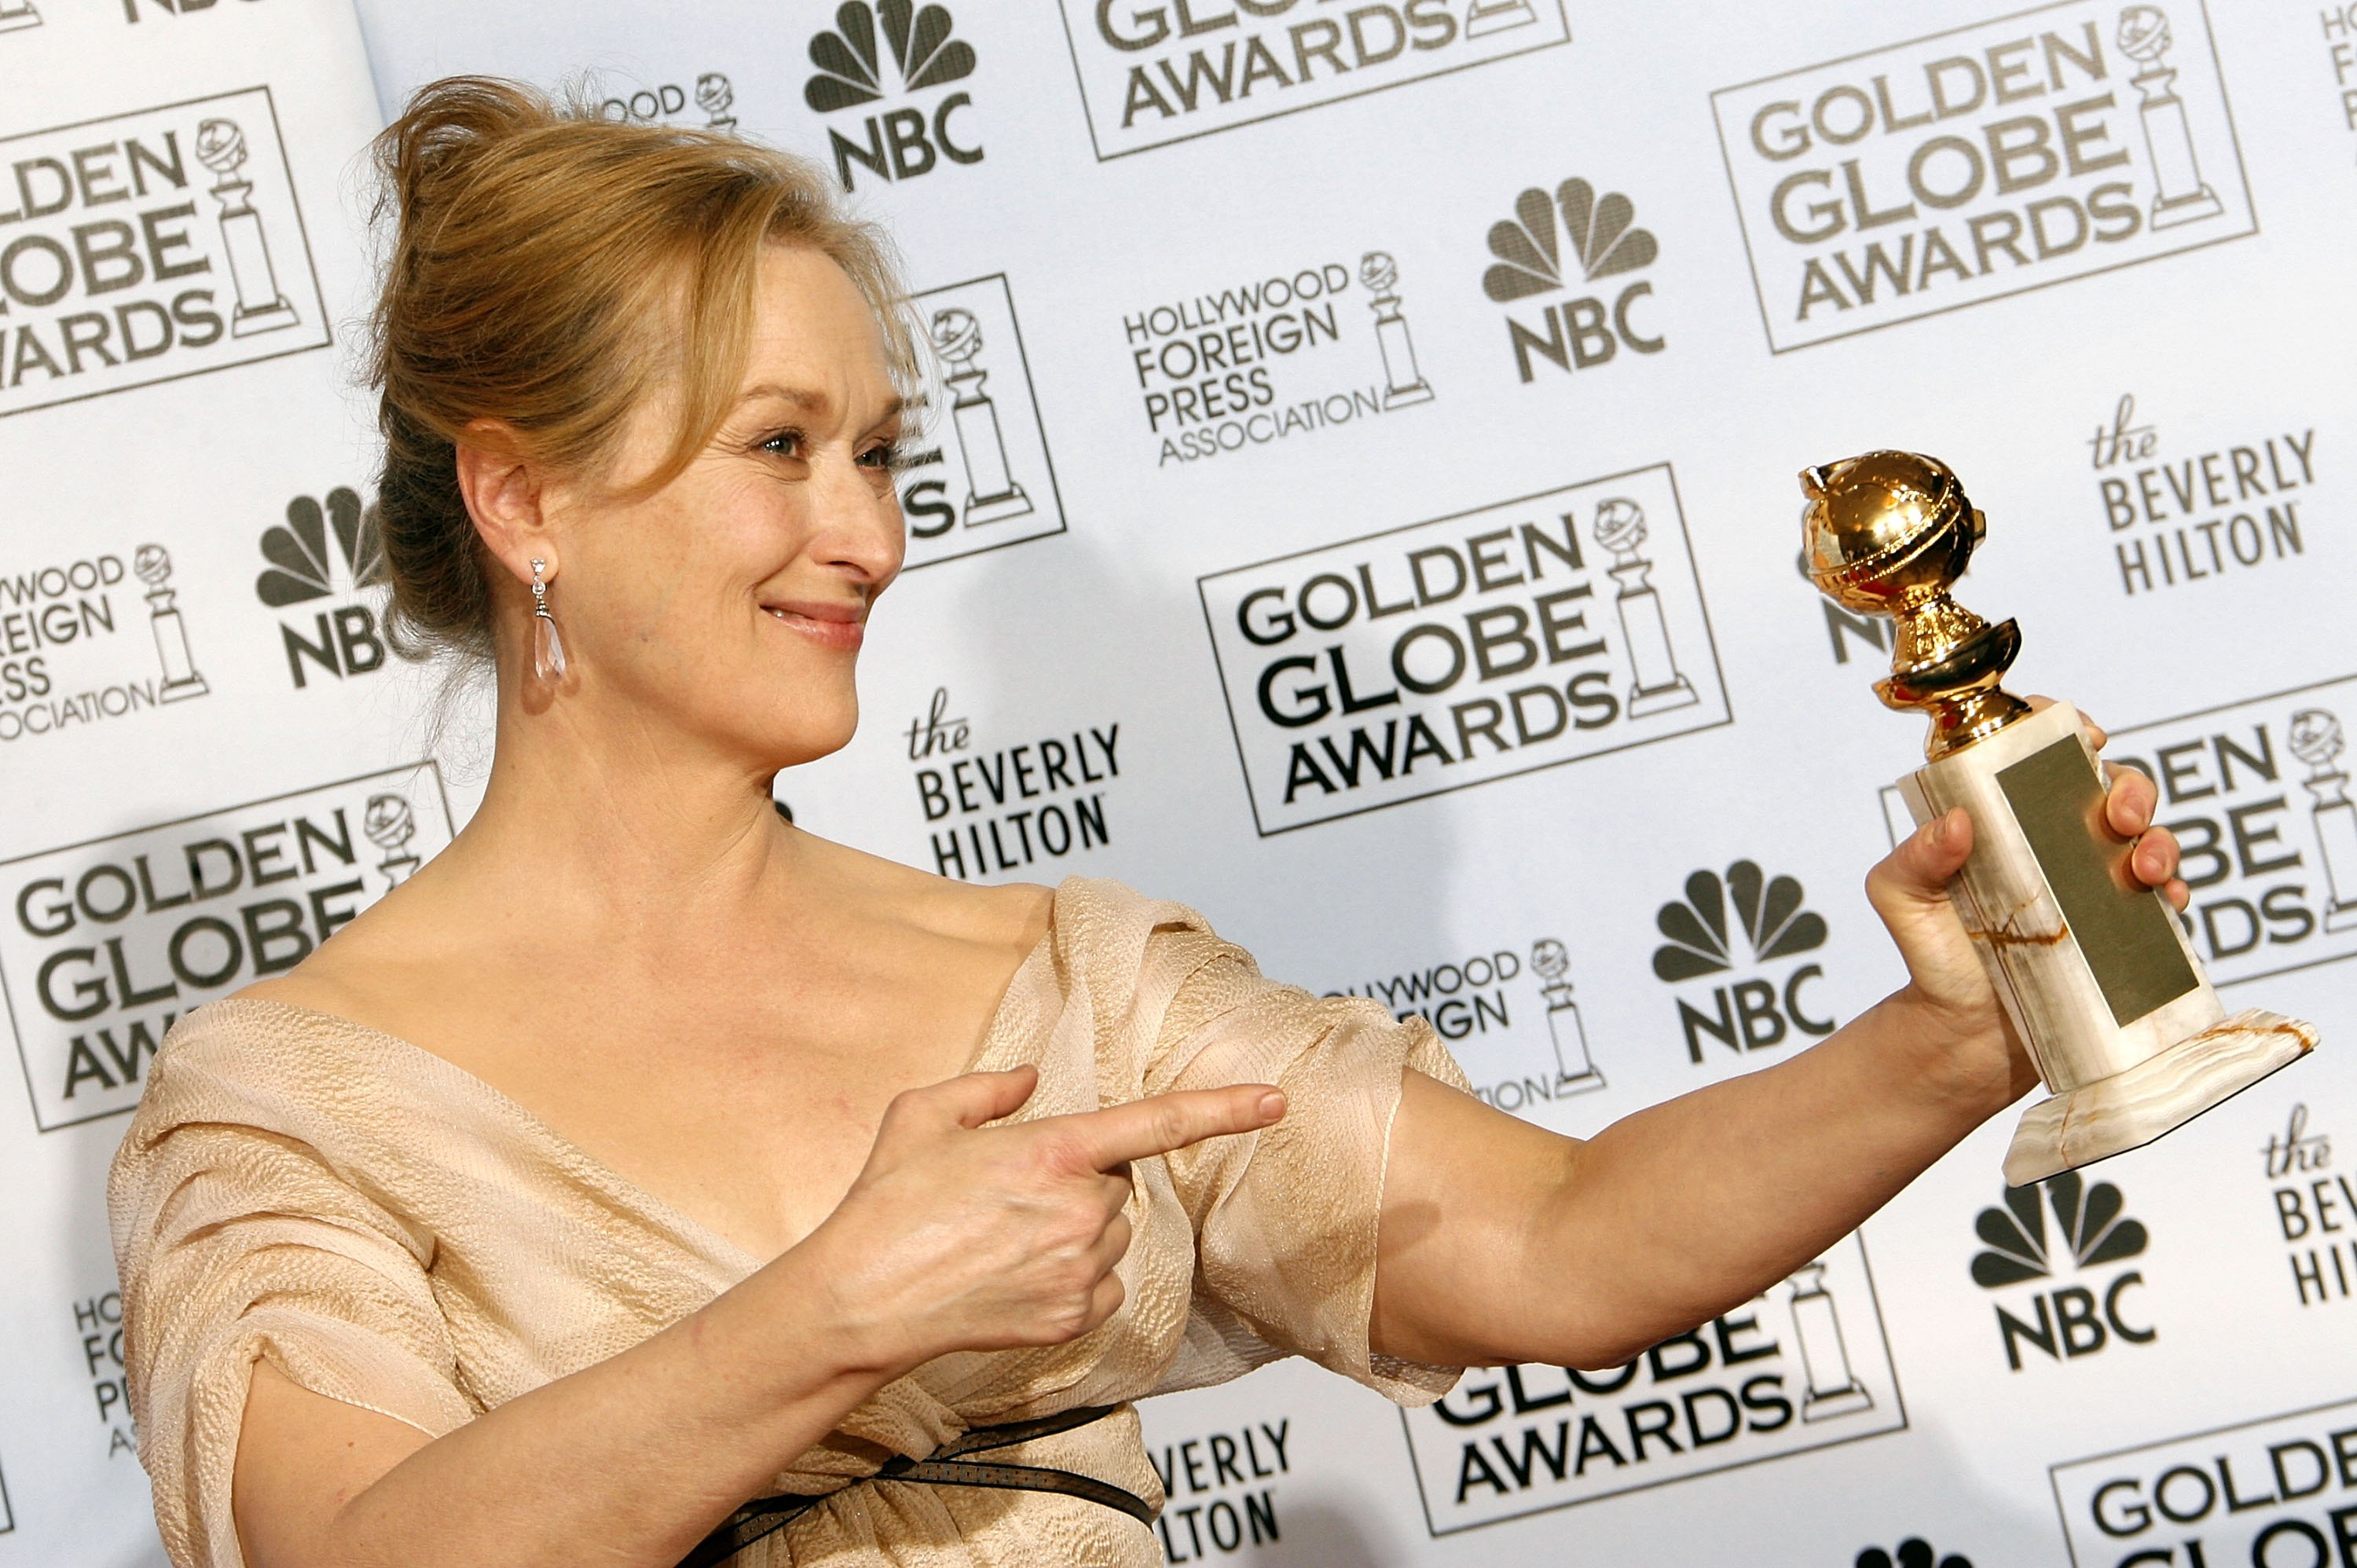 Actress Meryl Street poses with her Best Performance by an Actress in a Motion Picture - Musical or Comedy award for  The Devil Wears Prada  backstage during the 64th Annual Golden Globe Awards at the Beverly Hilton on January 15, 2007 in Beverly Hills, California.